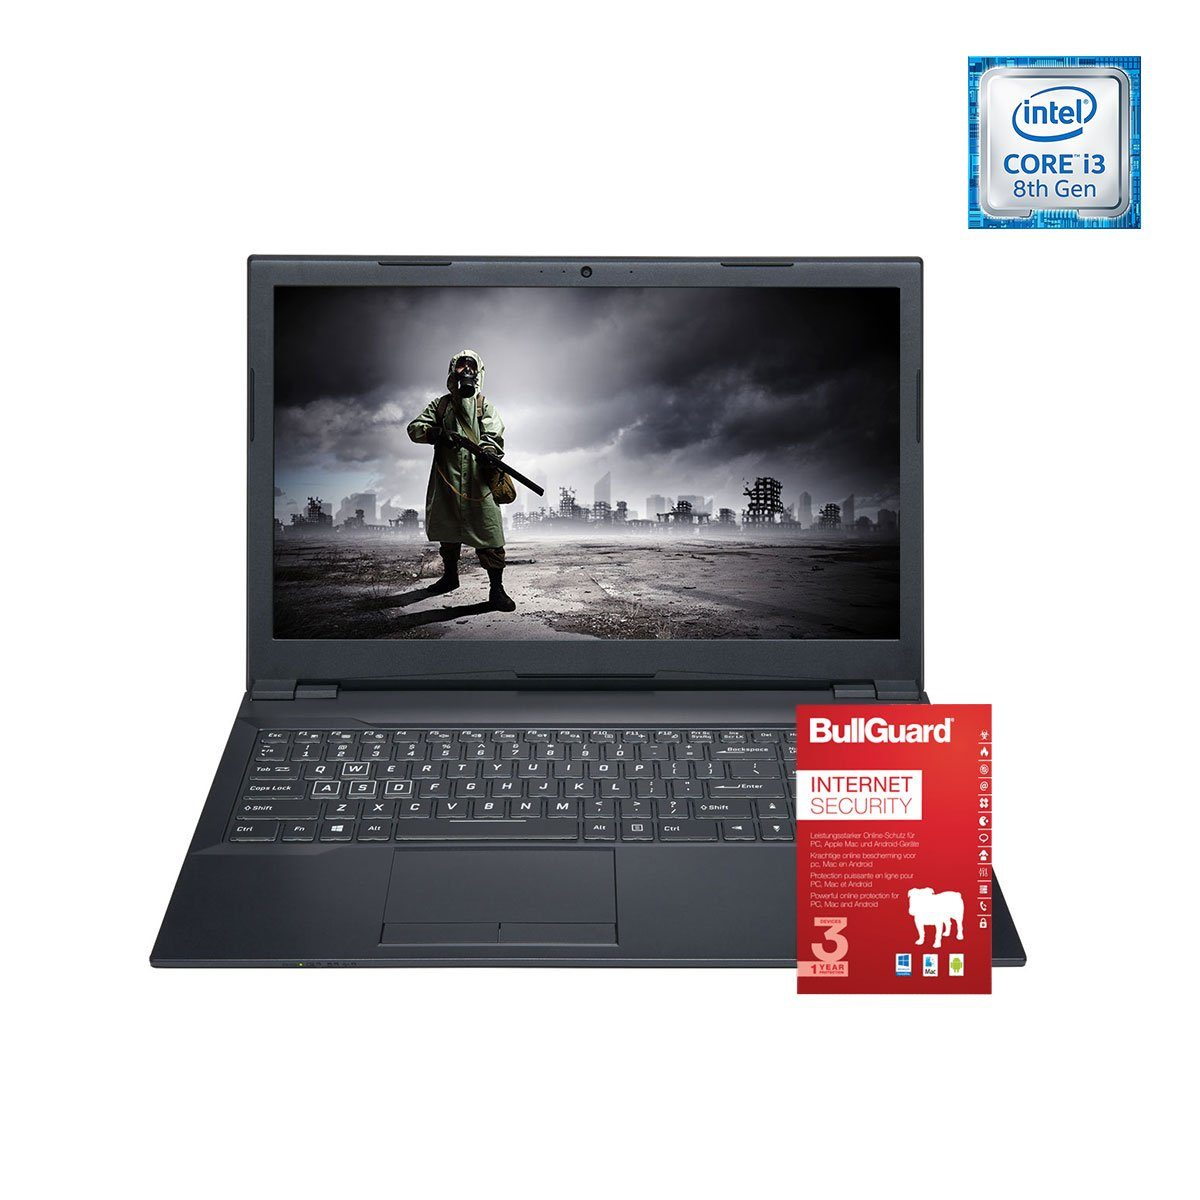 ONE GAMING Notebook, Core i3-8350K, GeForce MX150, 8GB DDR4 RAM »NB 44739«